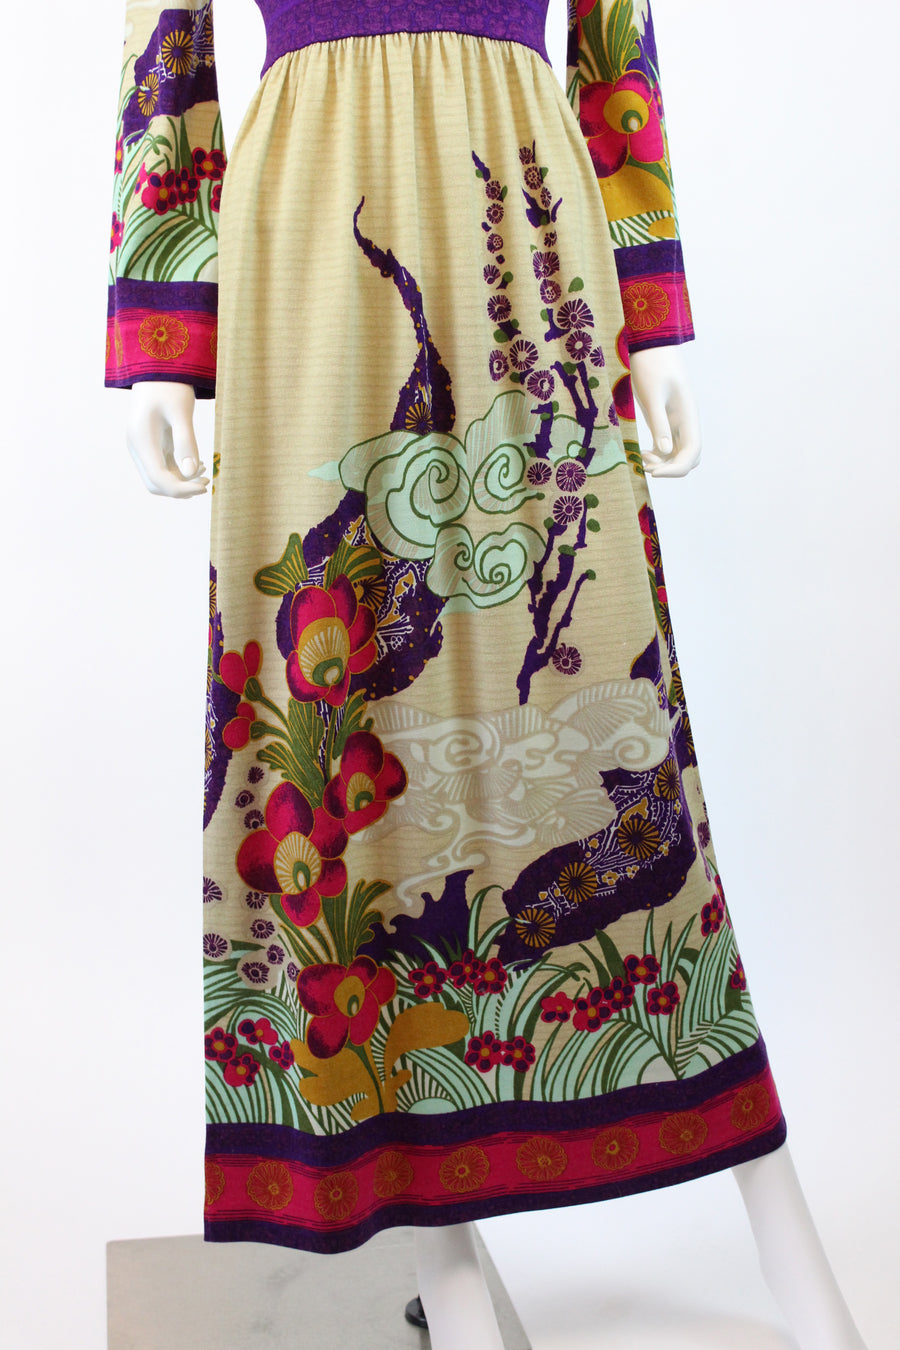 1970s Goldworm wool knit asian inspired dress small medium